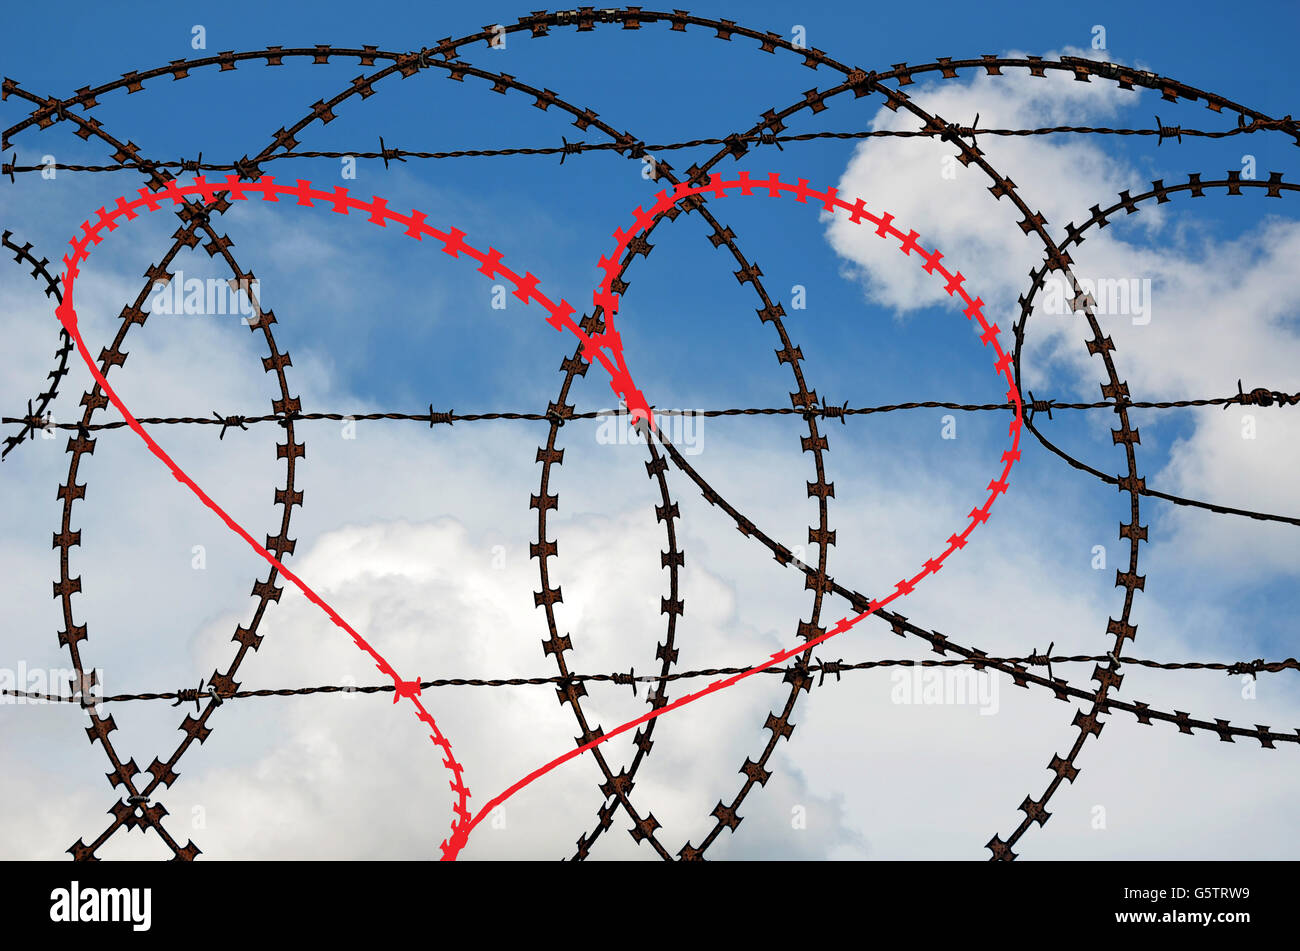 Heart With Barbed Wire Stock Photos & Heart With Barbed Wire Stock ...